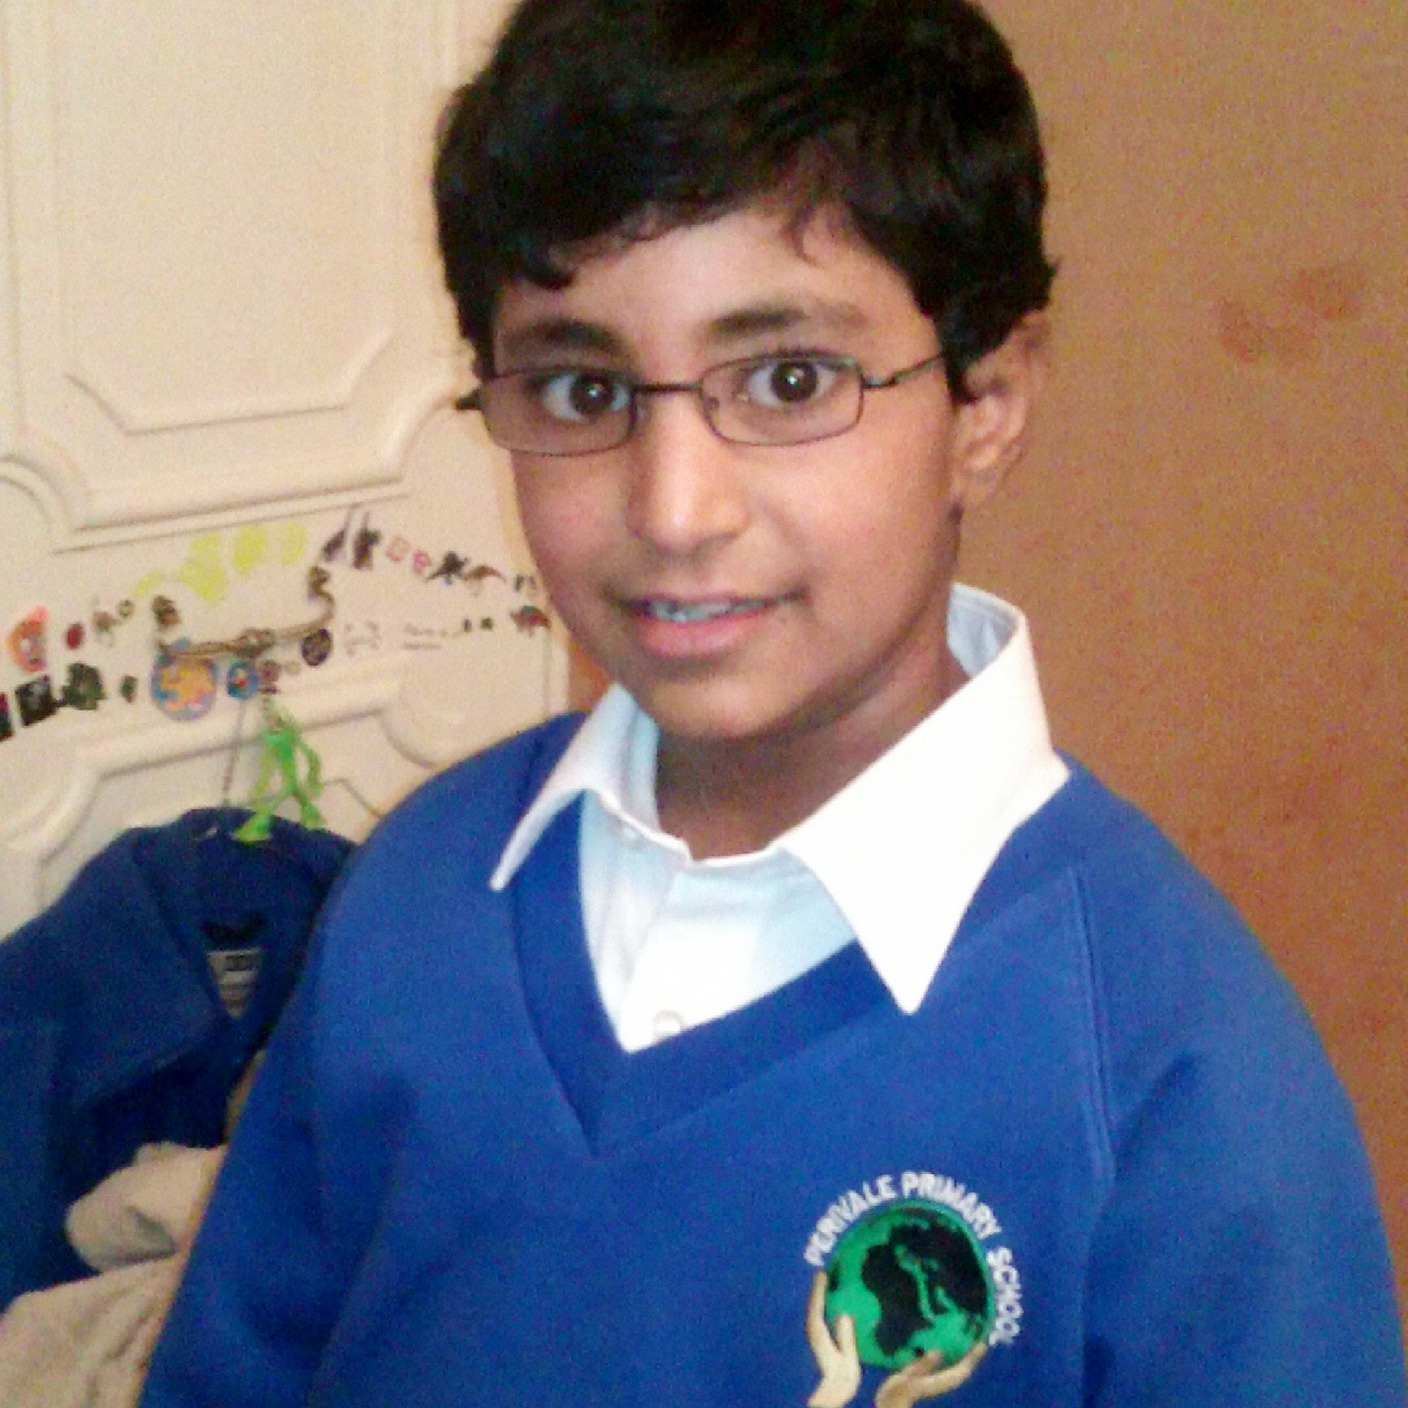 13 Year Old Schoolboy With Dairy Allergy Died After